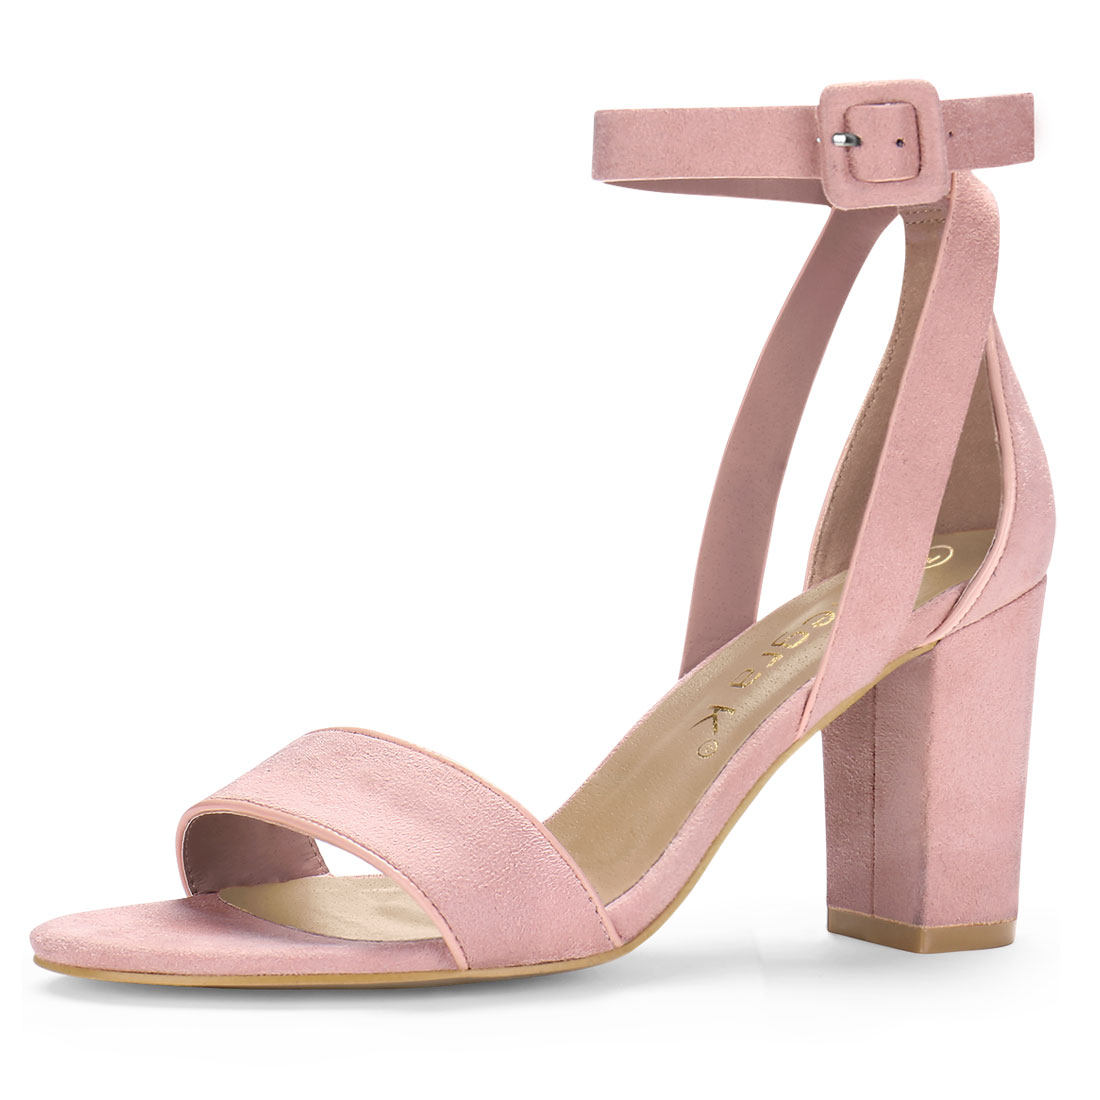 Women PU Panel Piped Chunky Heel Ankle Strap Sandals Light Pink US 8.5